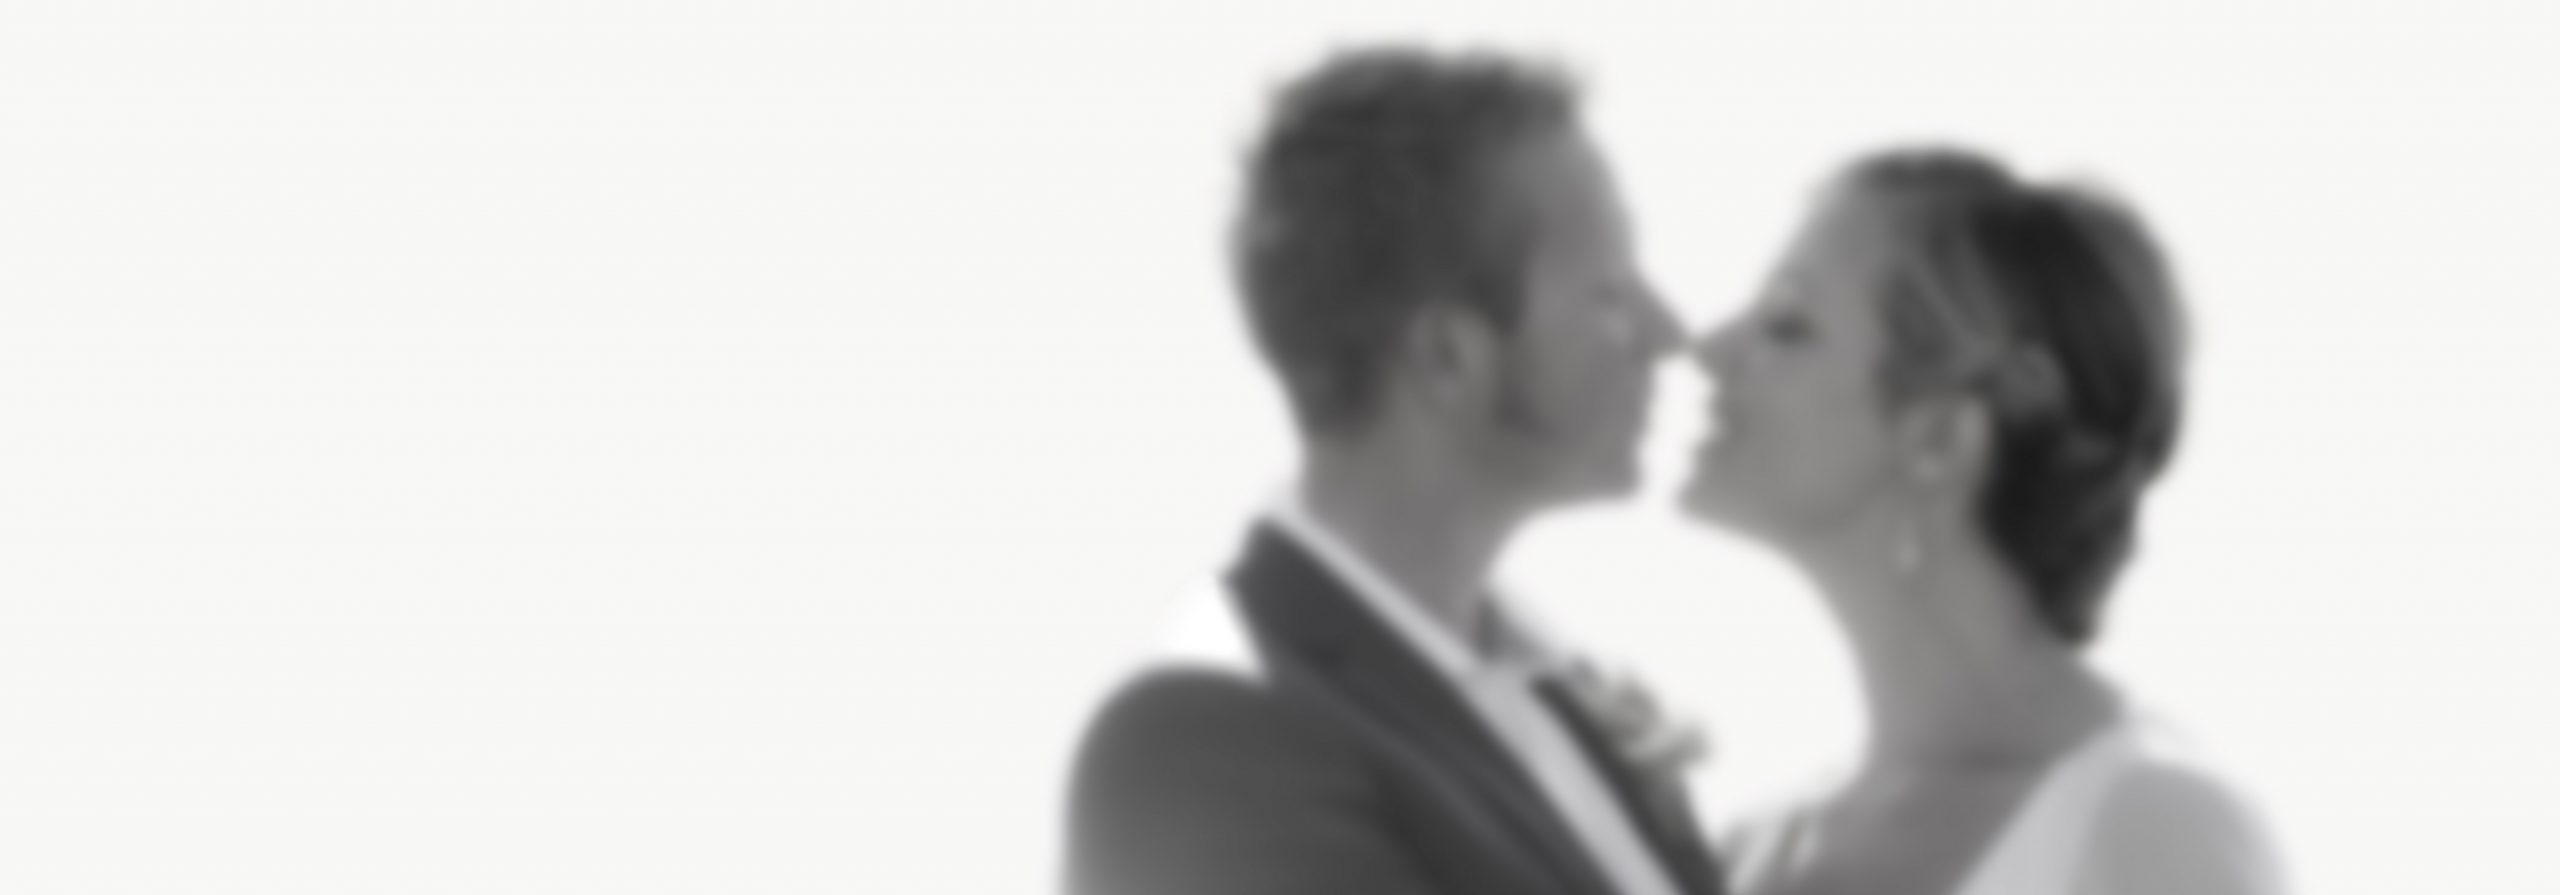 Wedding Photography Packages -Wedded Couple Kiss